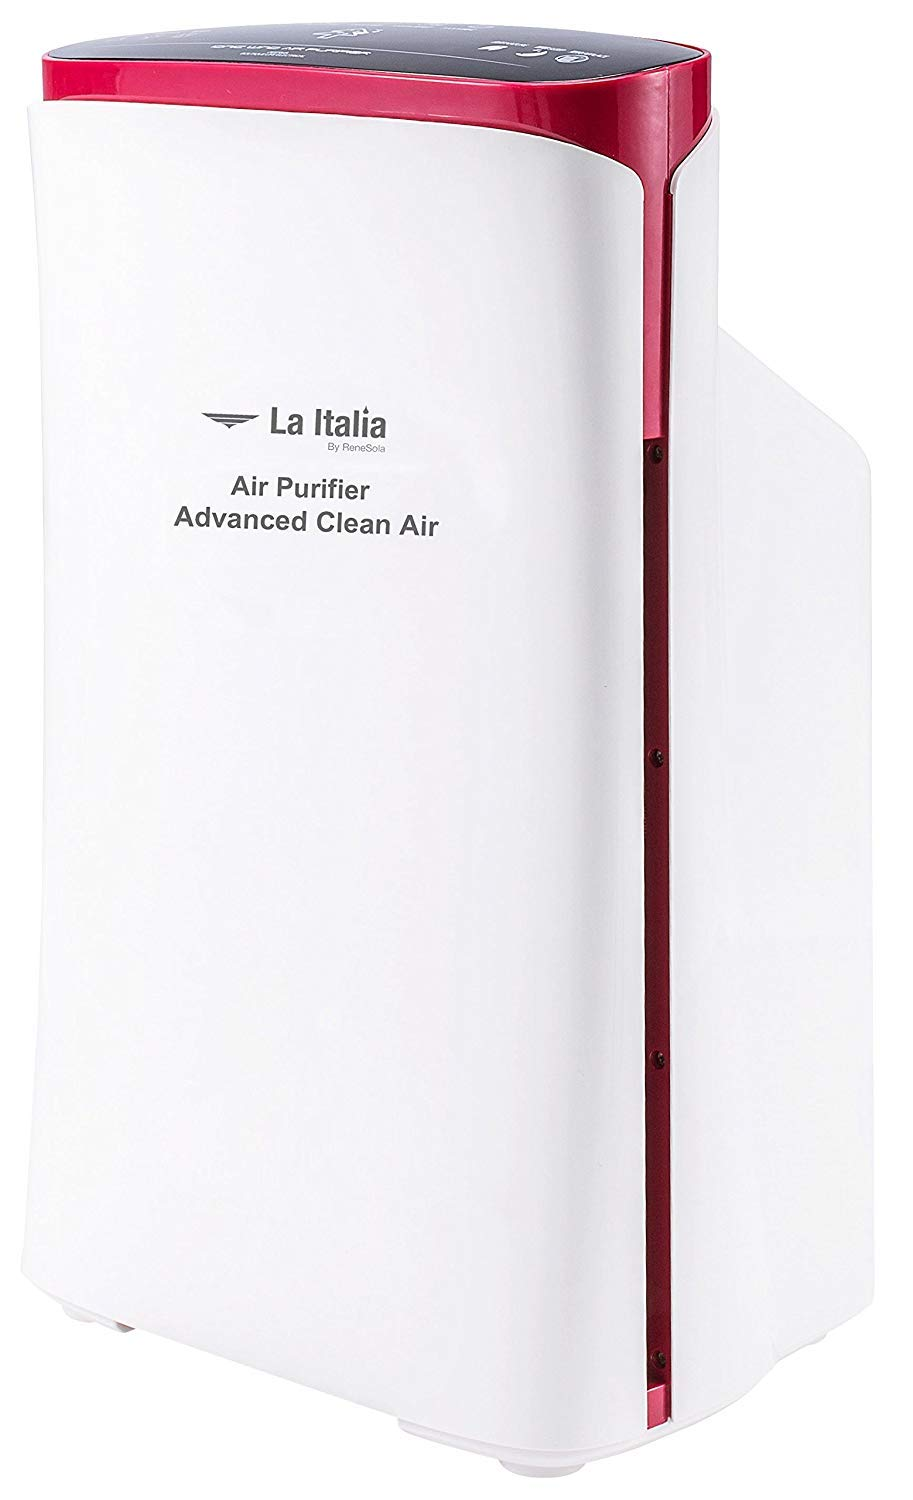 La italia air purifier